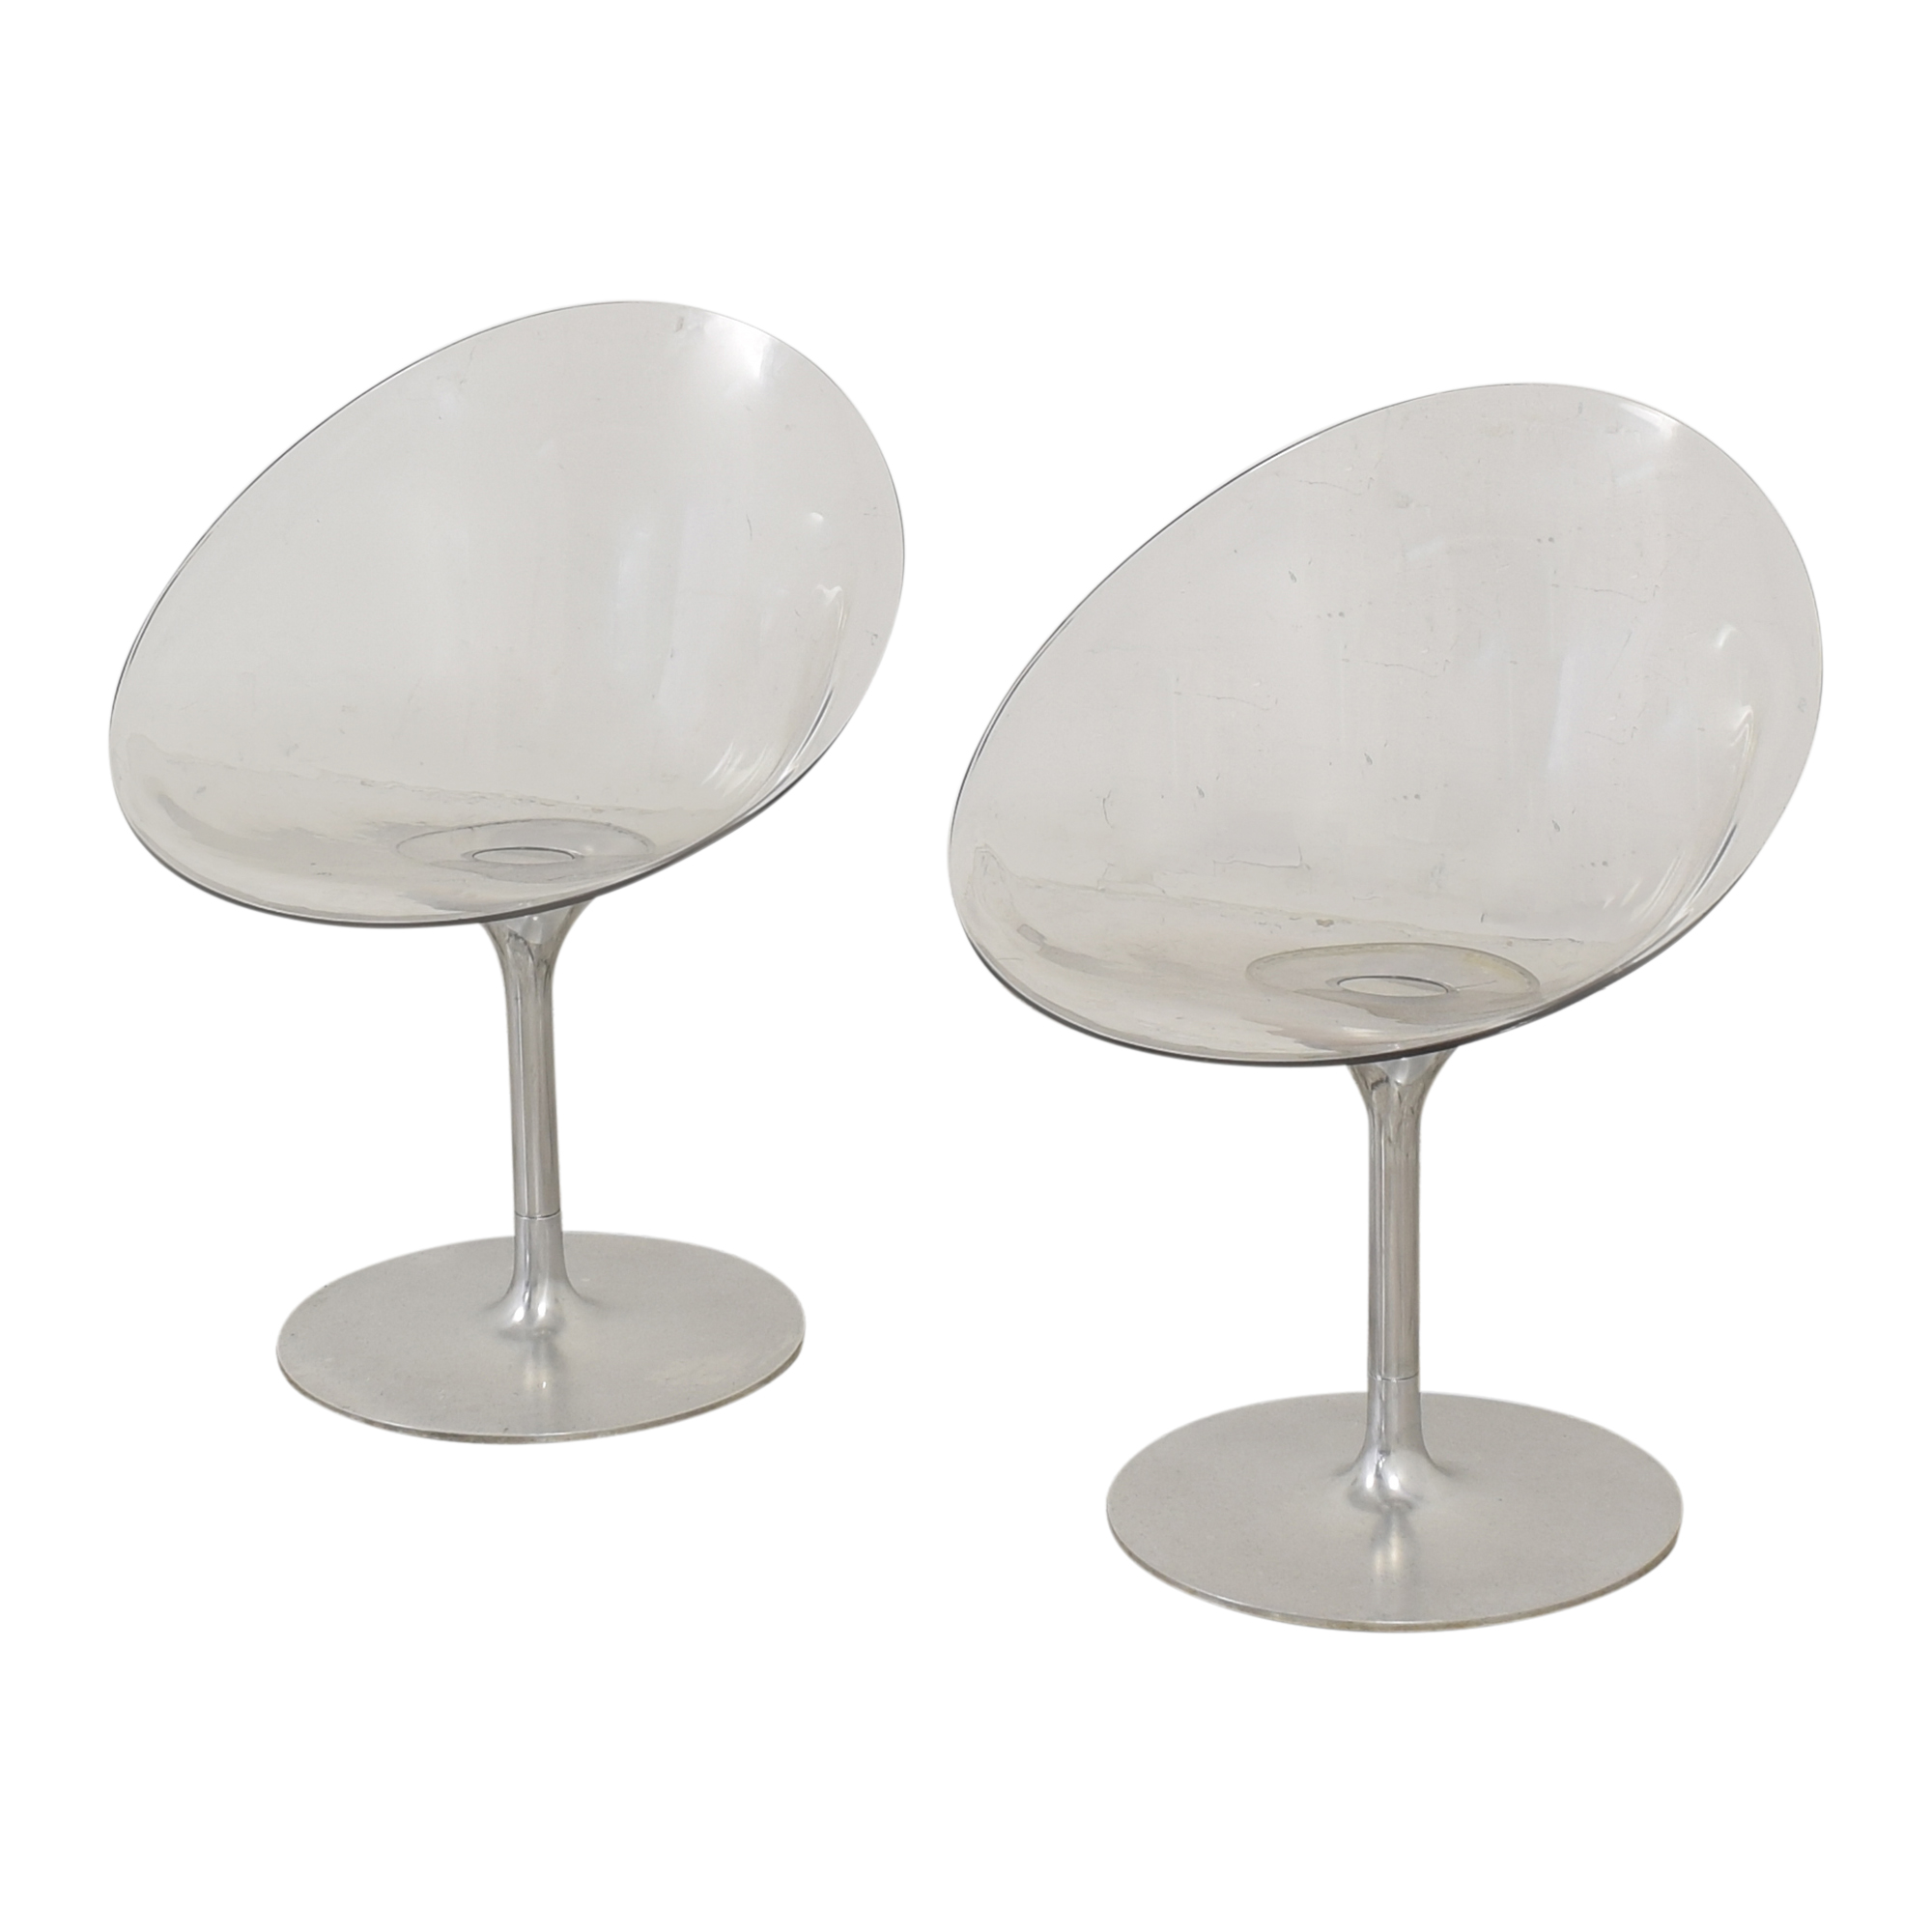 Kartell Kartell by Philippe Starck Ero s  Swivel Chairs dimensions